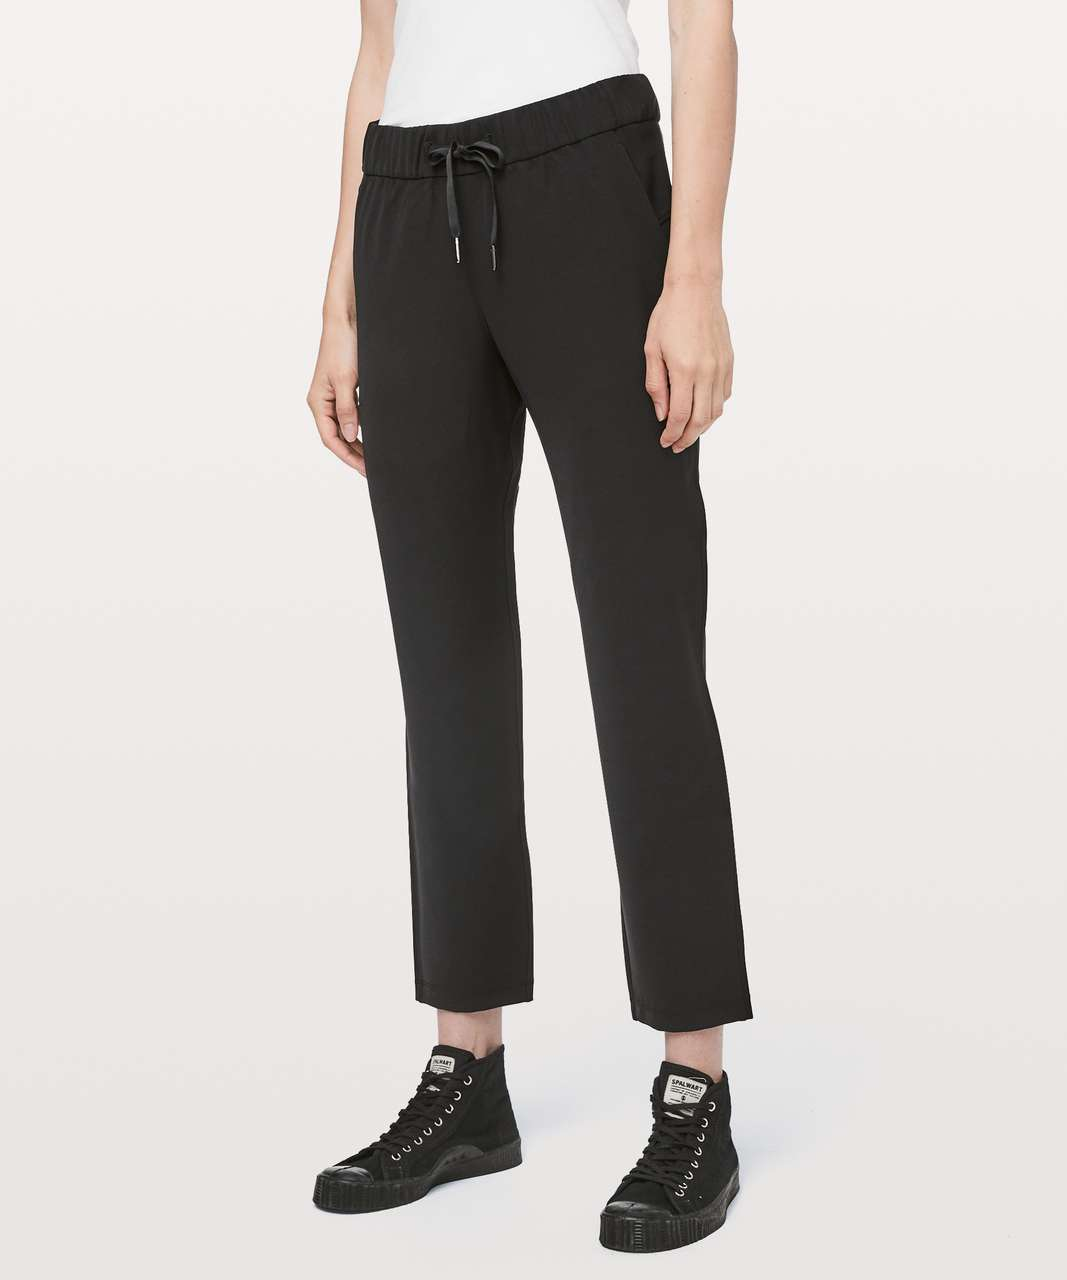 "Lululemon On The Fly Pant *Woven 27"" - Black"